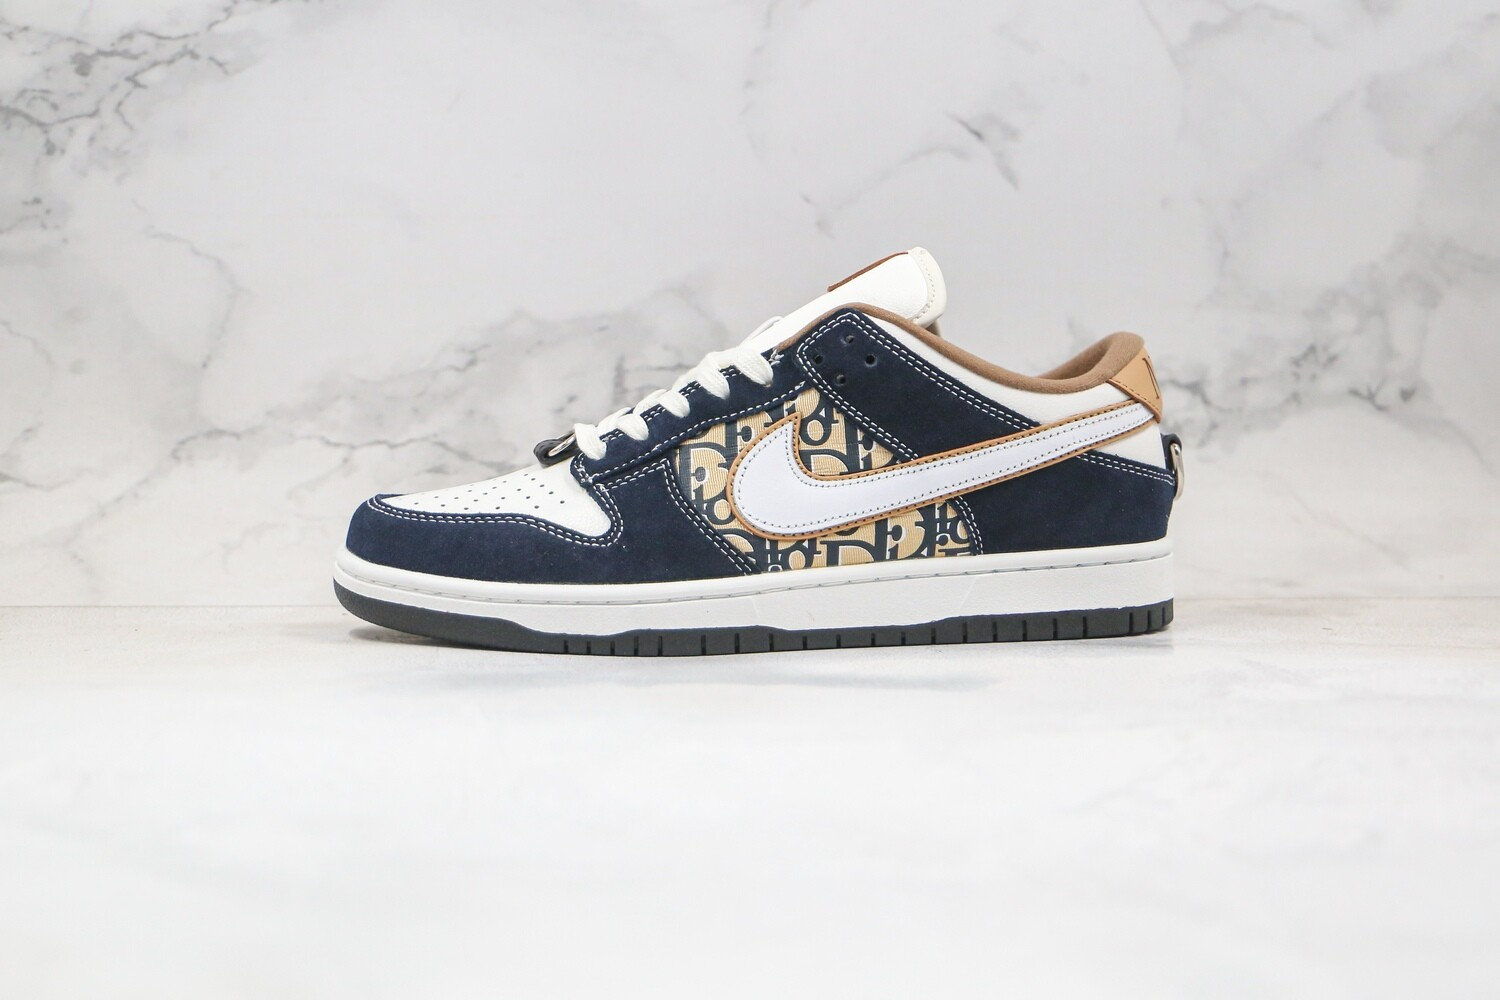 Custom Sneaker - Nike Swed Dunk Low SB